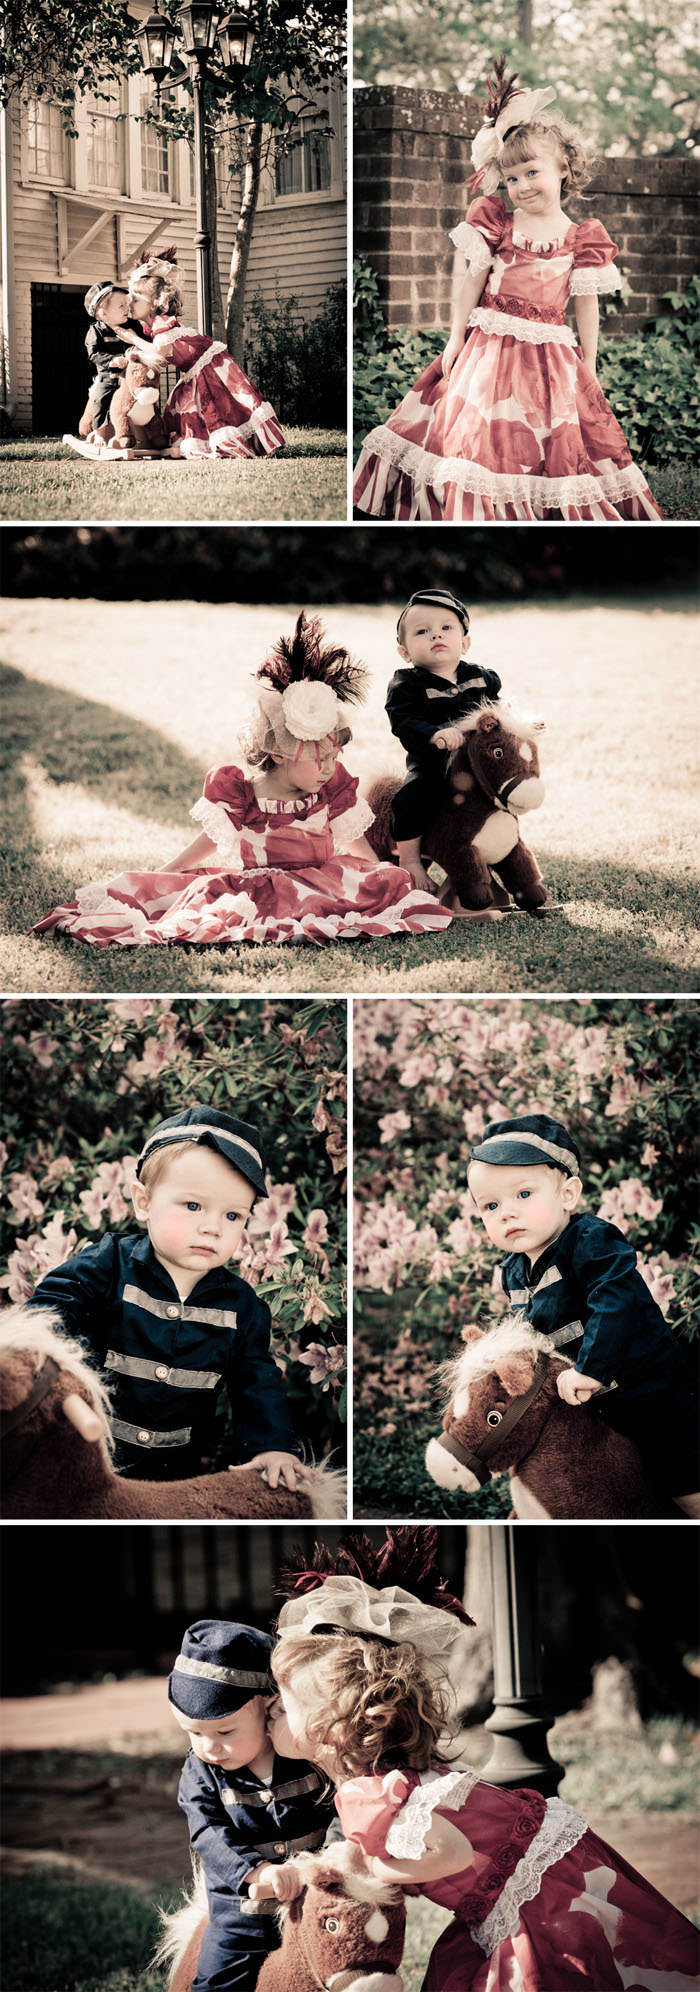 Southern Belle and Drummer Boy themed children's stylized photo shoot tutorial and guide